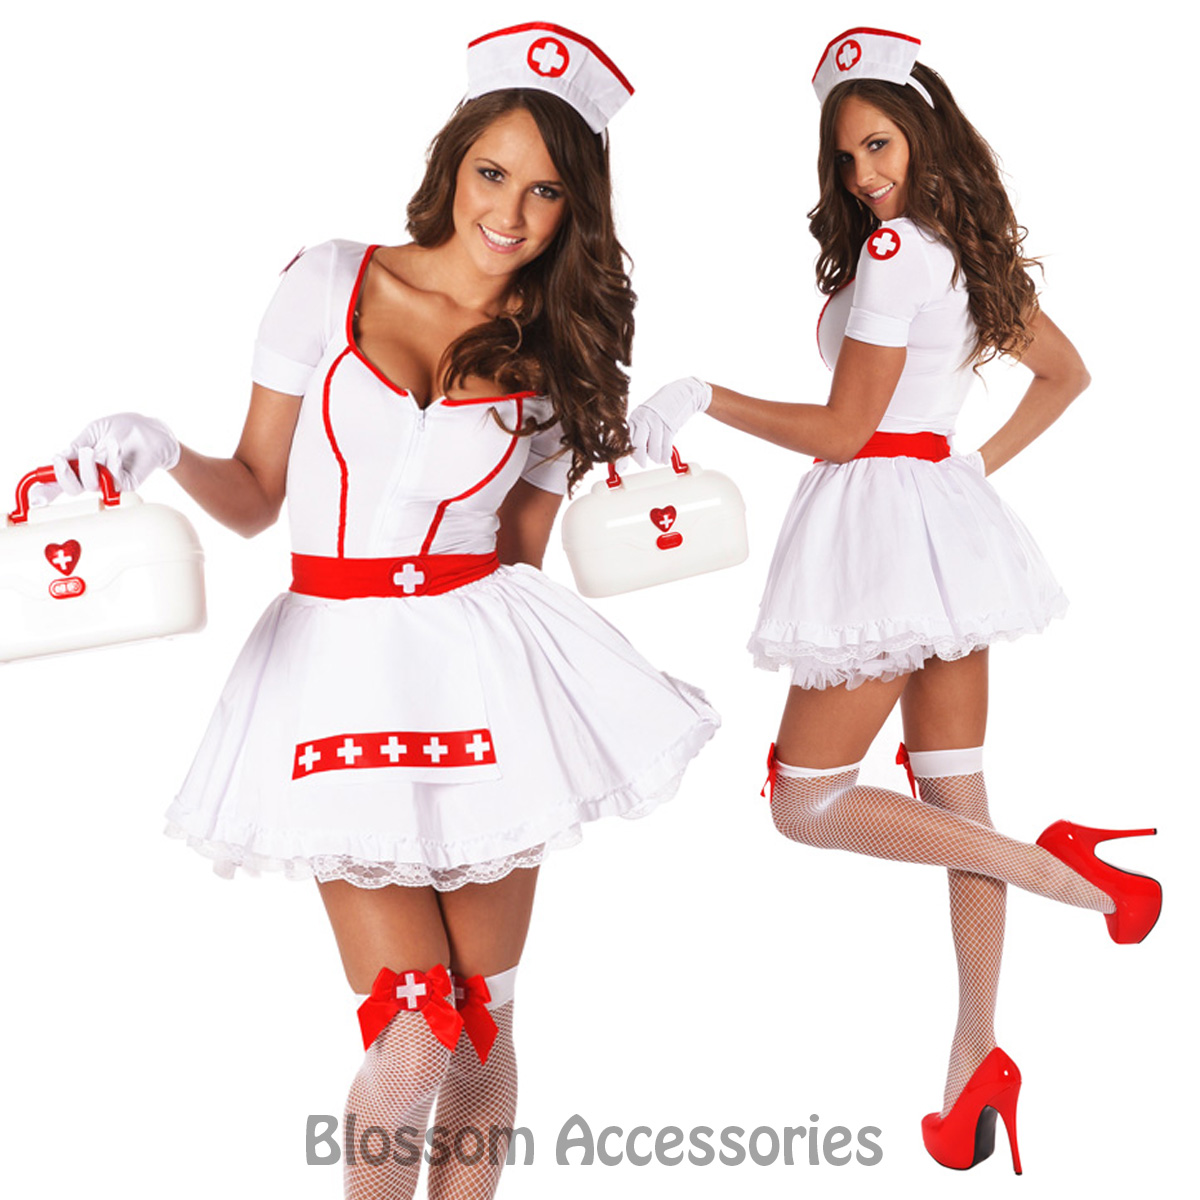 Nurse Costume Party City image information